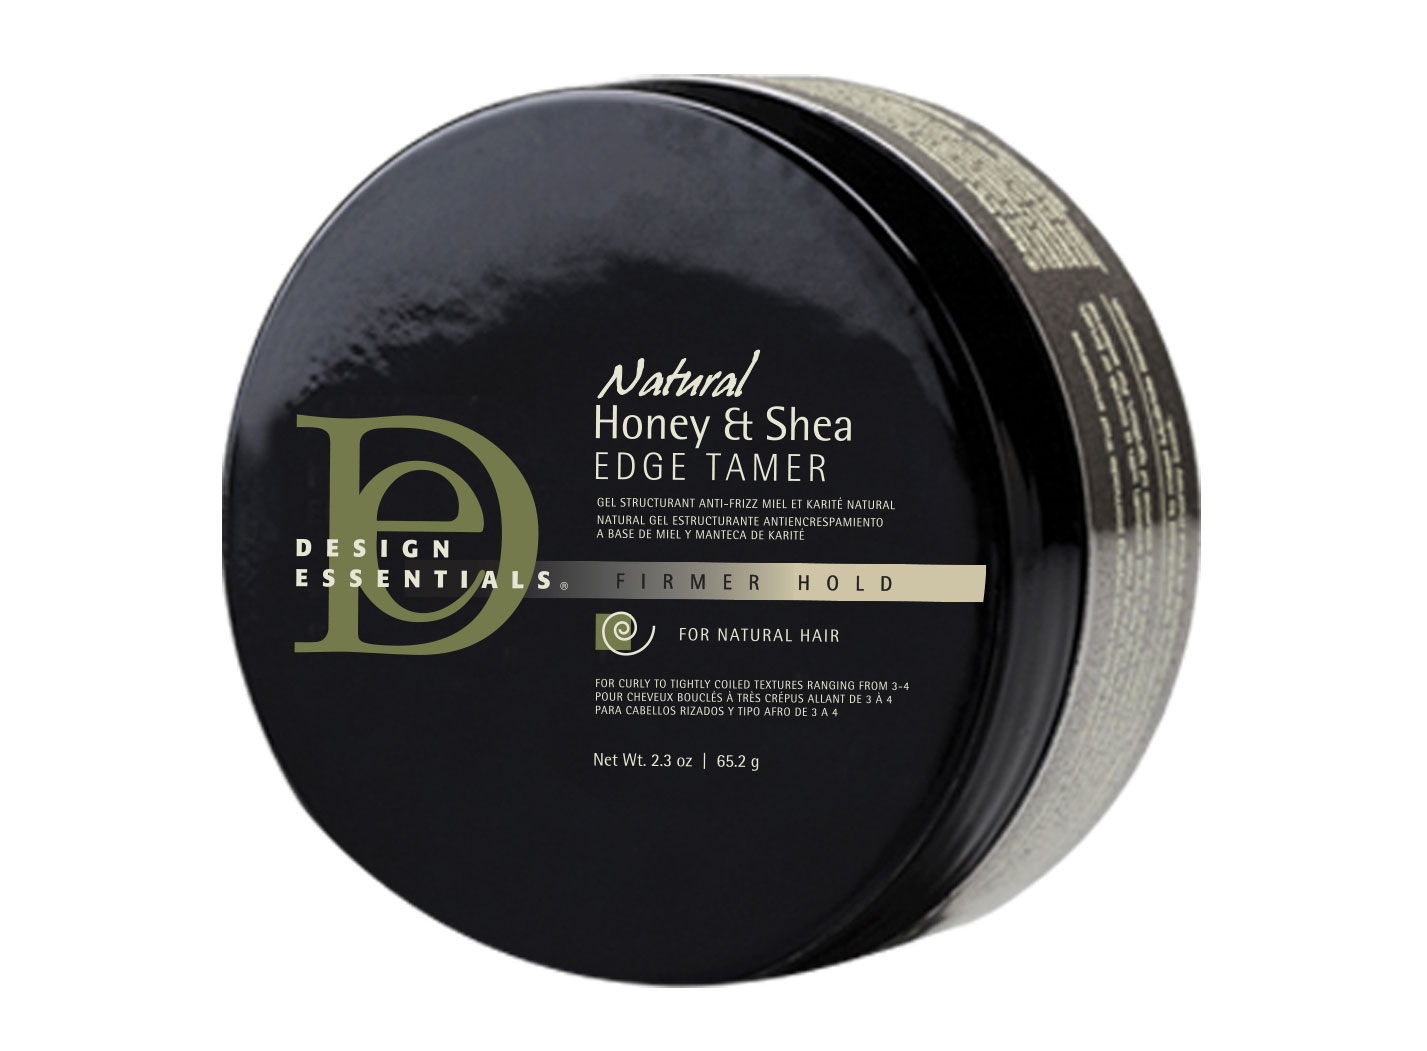 DESIGN ESSENTIALS Natural Honey & Shea Edge Tamer, £8.99